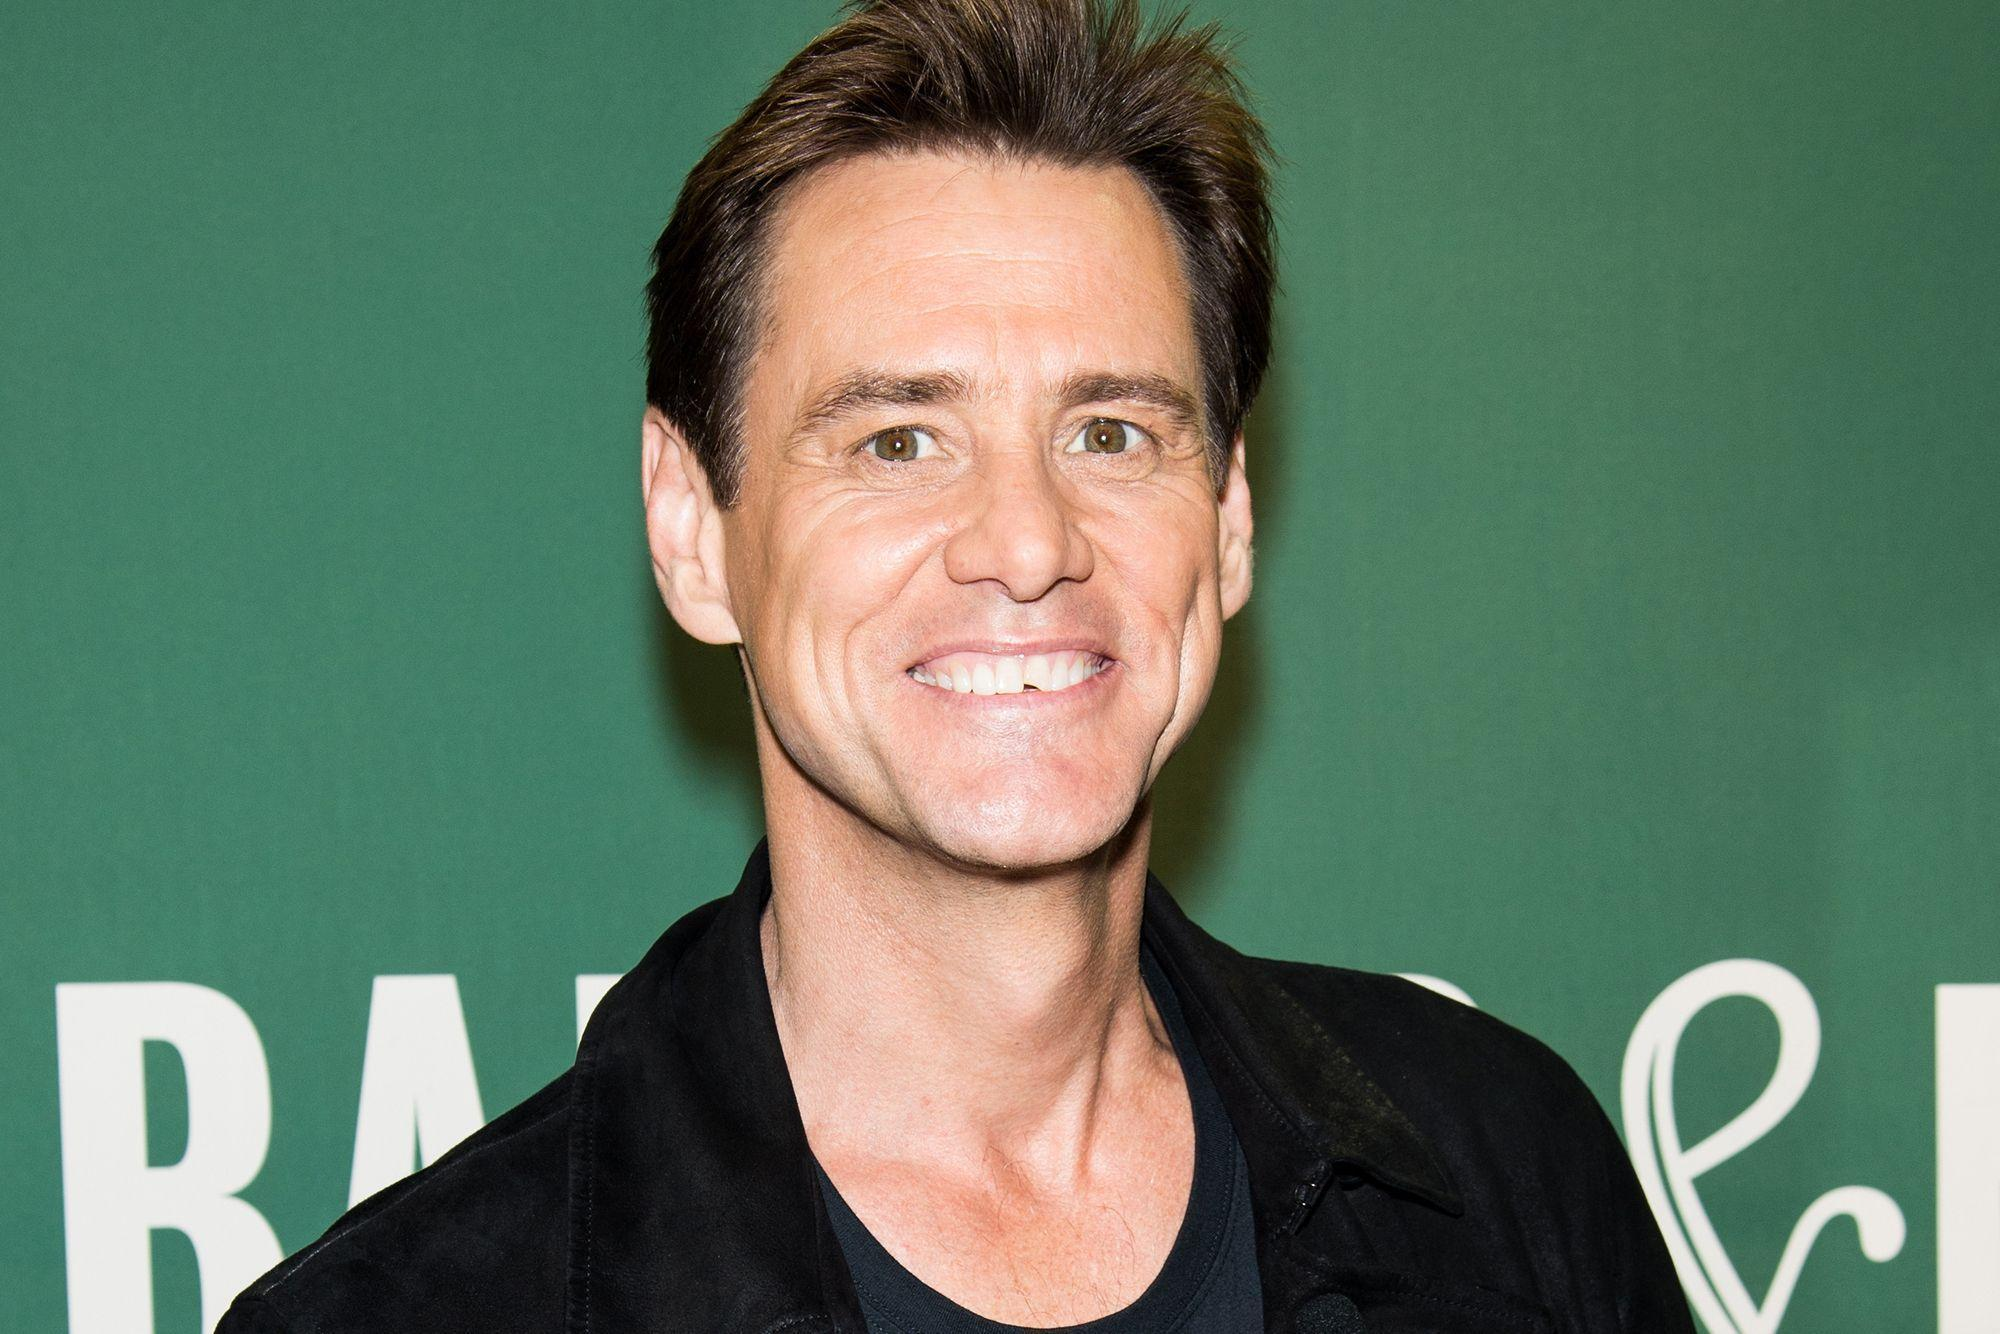 Jim Carrey Wallpapers Image Photos Pictures Backgrounds